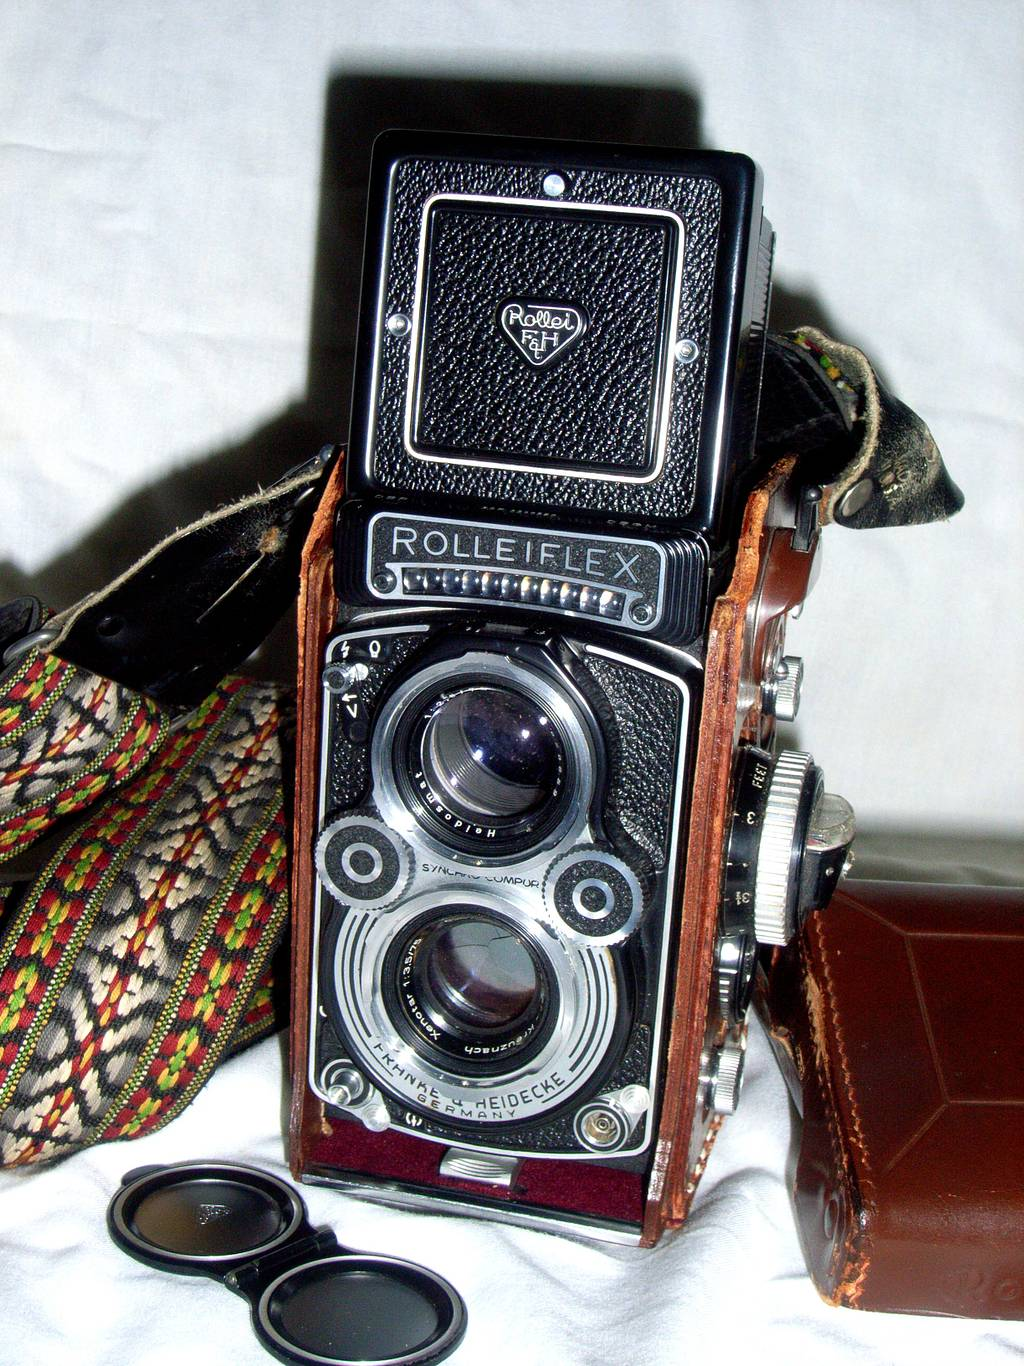 Rolleiflex 3.5f and the Dangers of Adolescent Rudeness